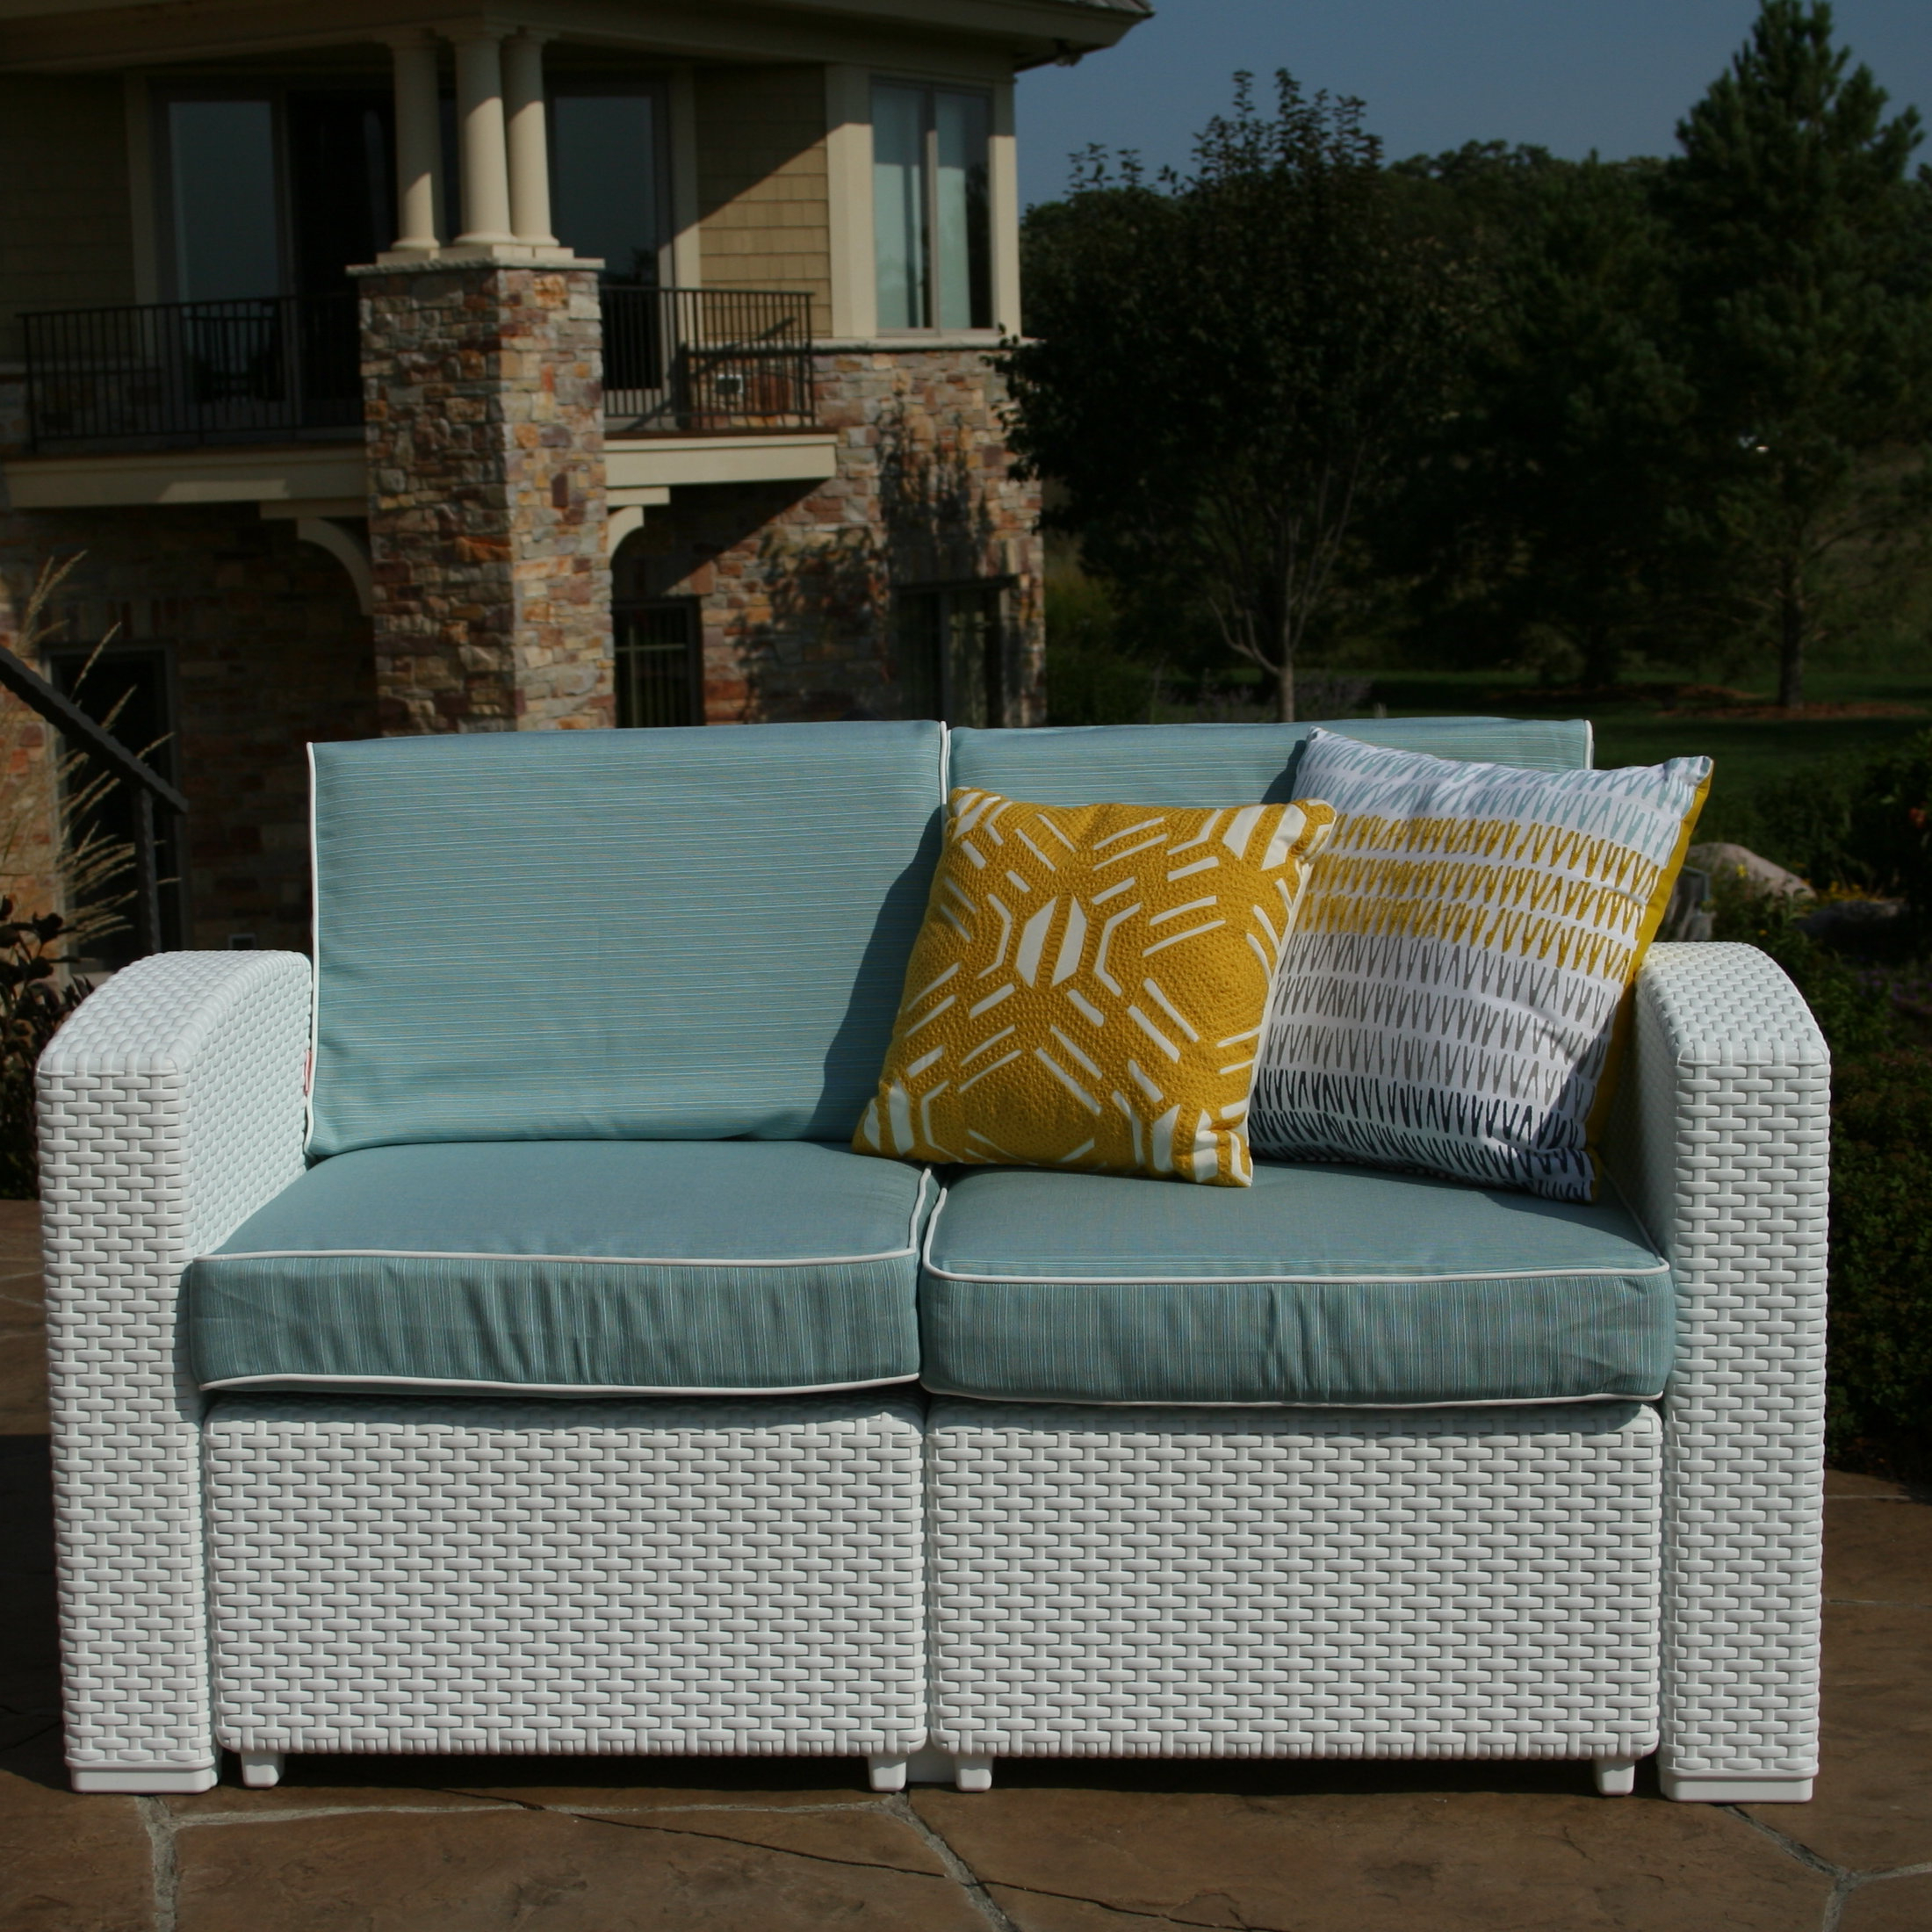 Loggins Patio Loveseat With Cushions With Regard To Favorite Loggins Loveseats With Cushions (View 2 of 20)